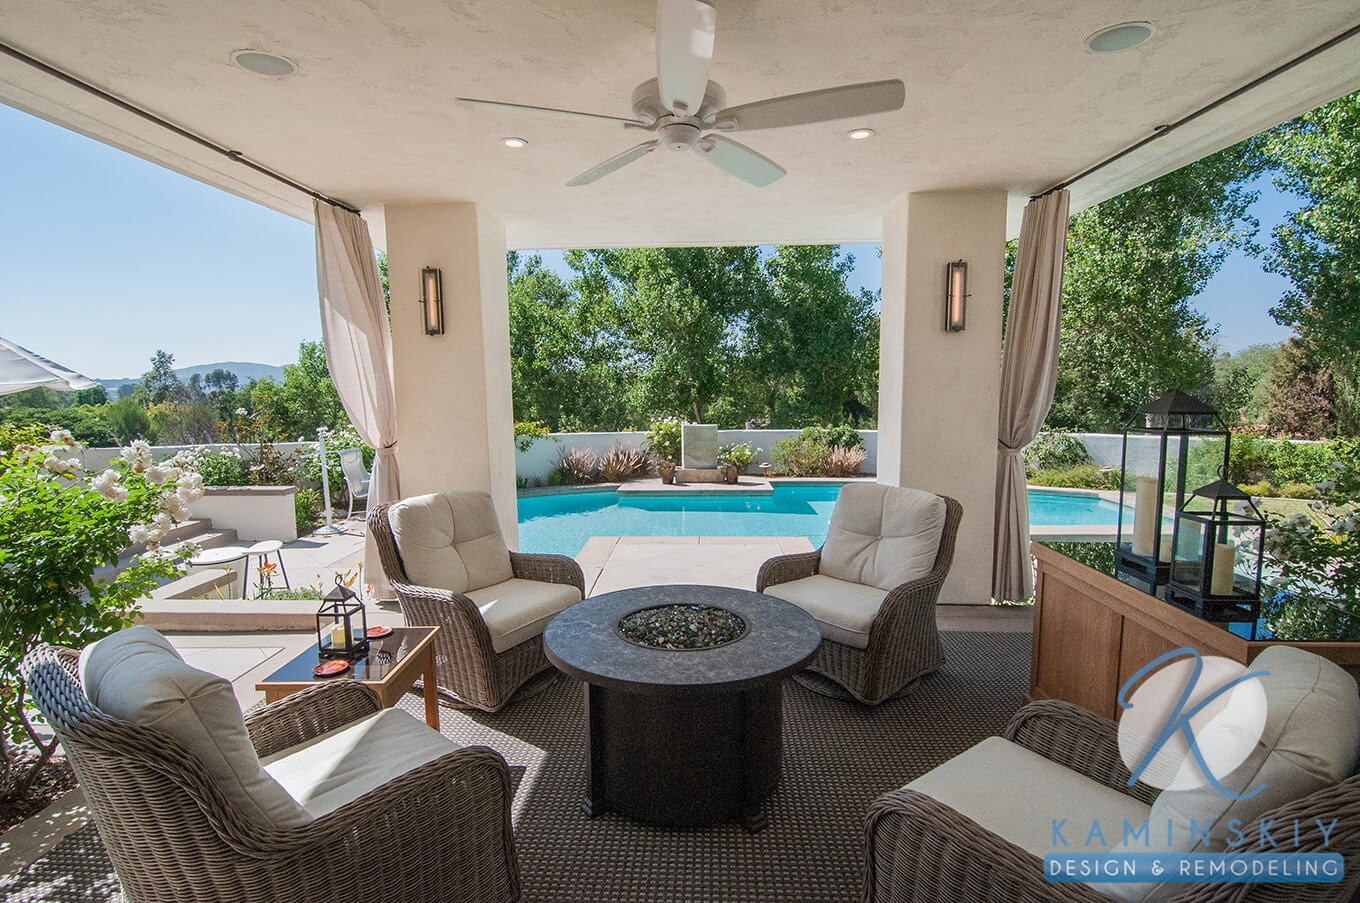 Best Design Company For Outdoor Living in San Diego